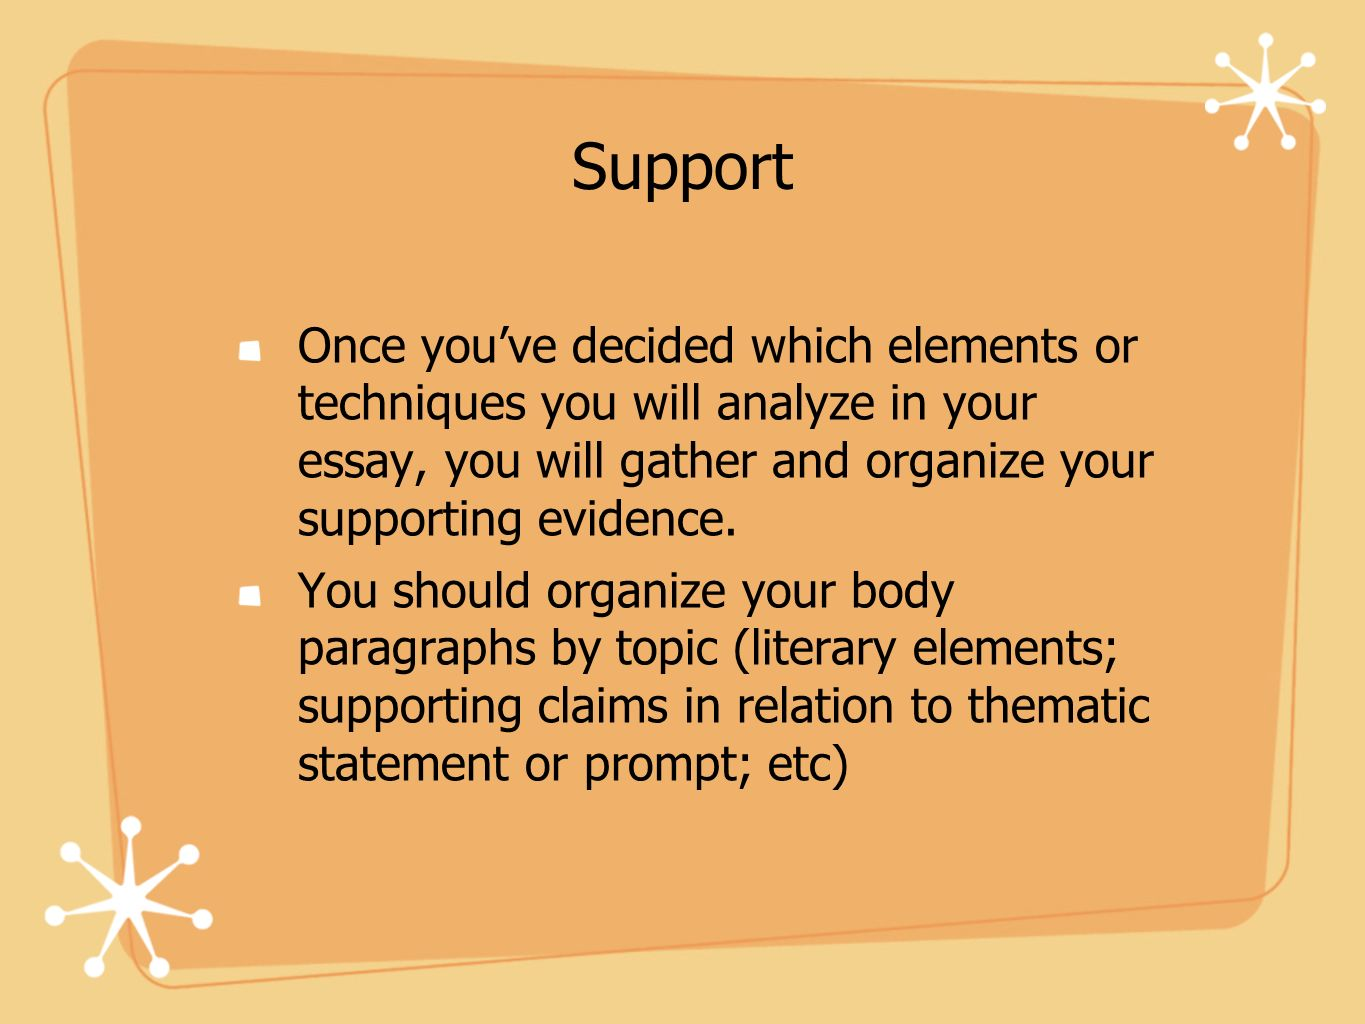 Support Once you've decided which elements or techniques you will analyze in your essay, you will gather and organize your supporting evidence.